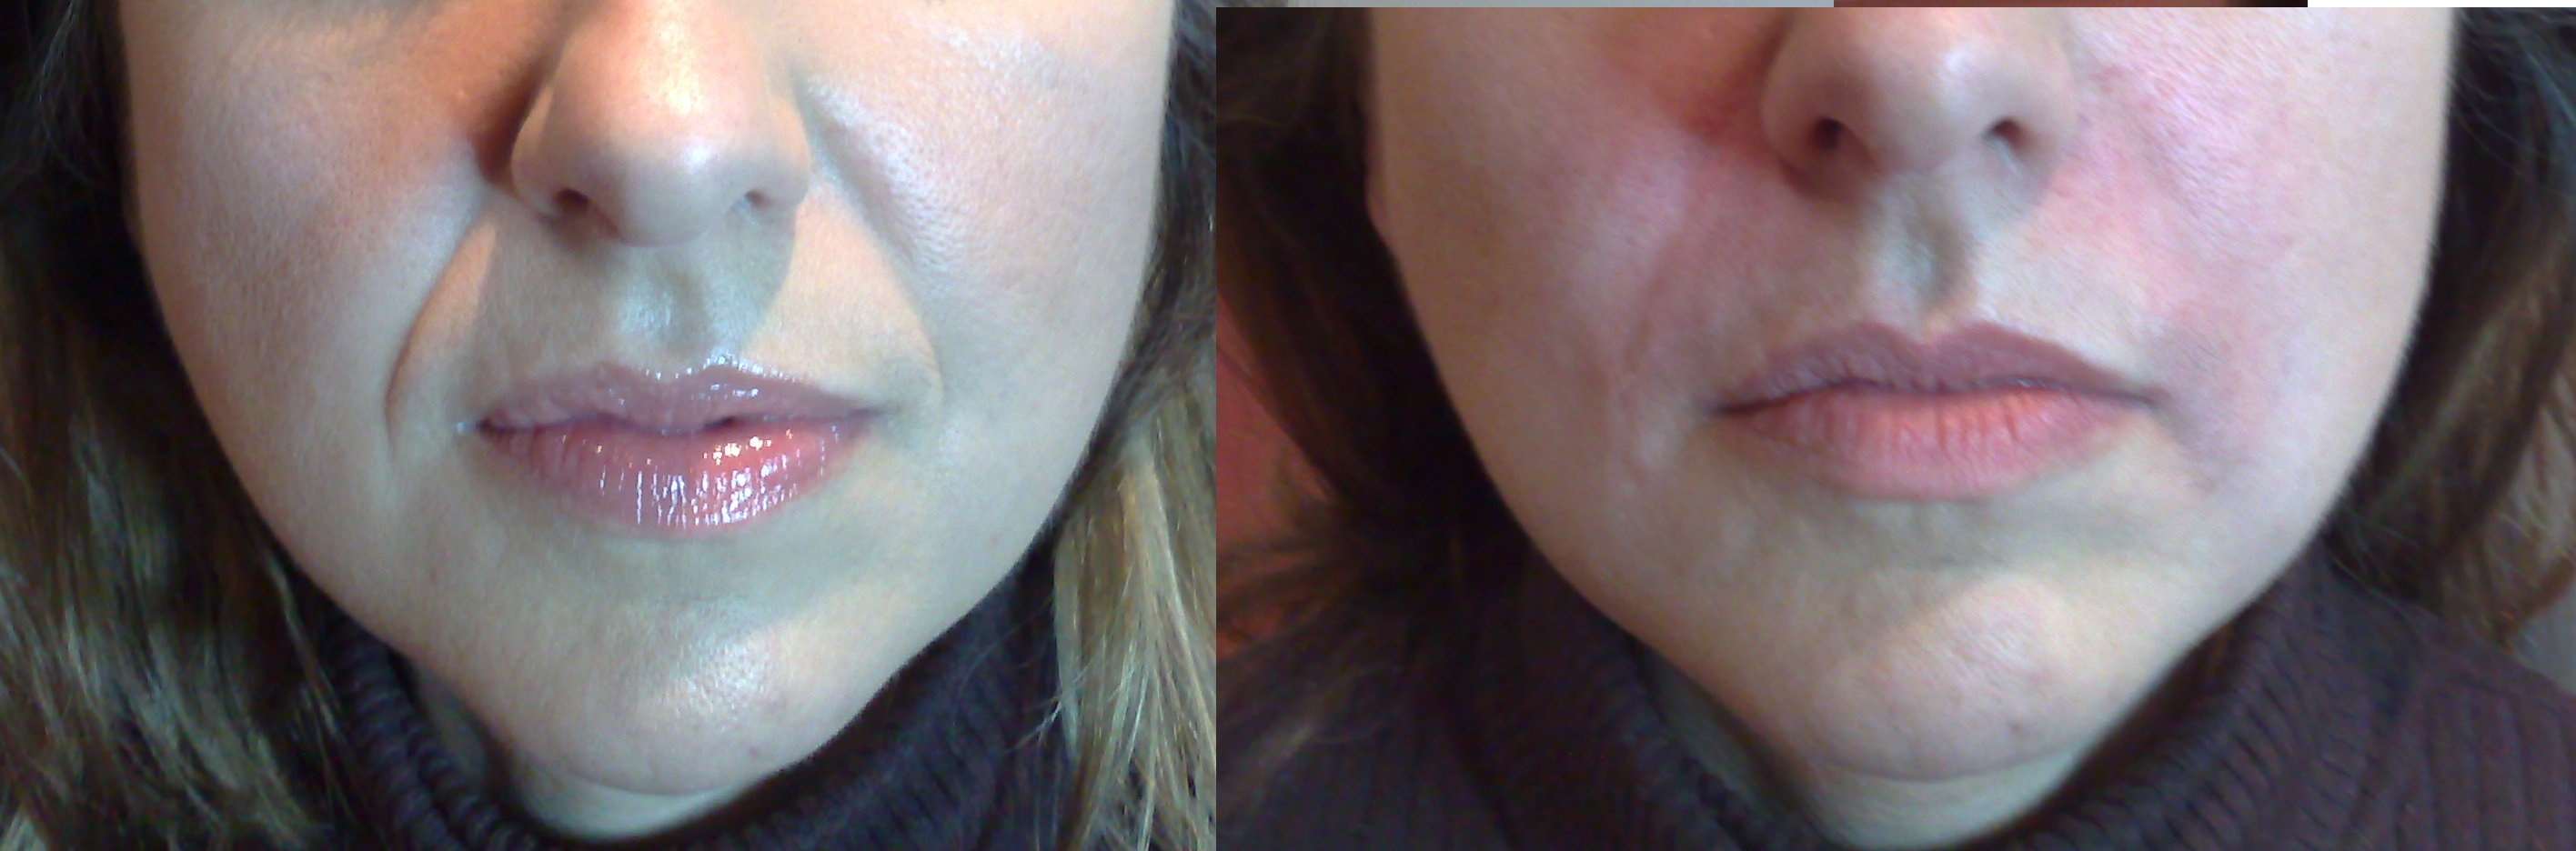 parenthesis-lines deep lines dermal fillers at castleknock cosmetic clinic dublin 15